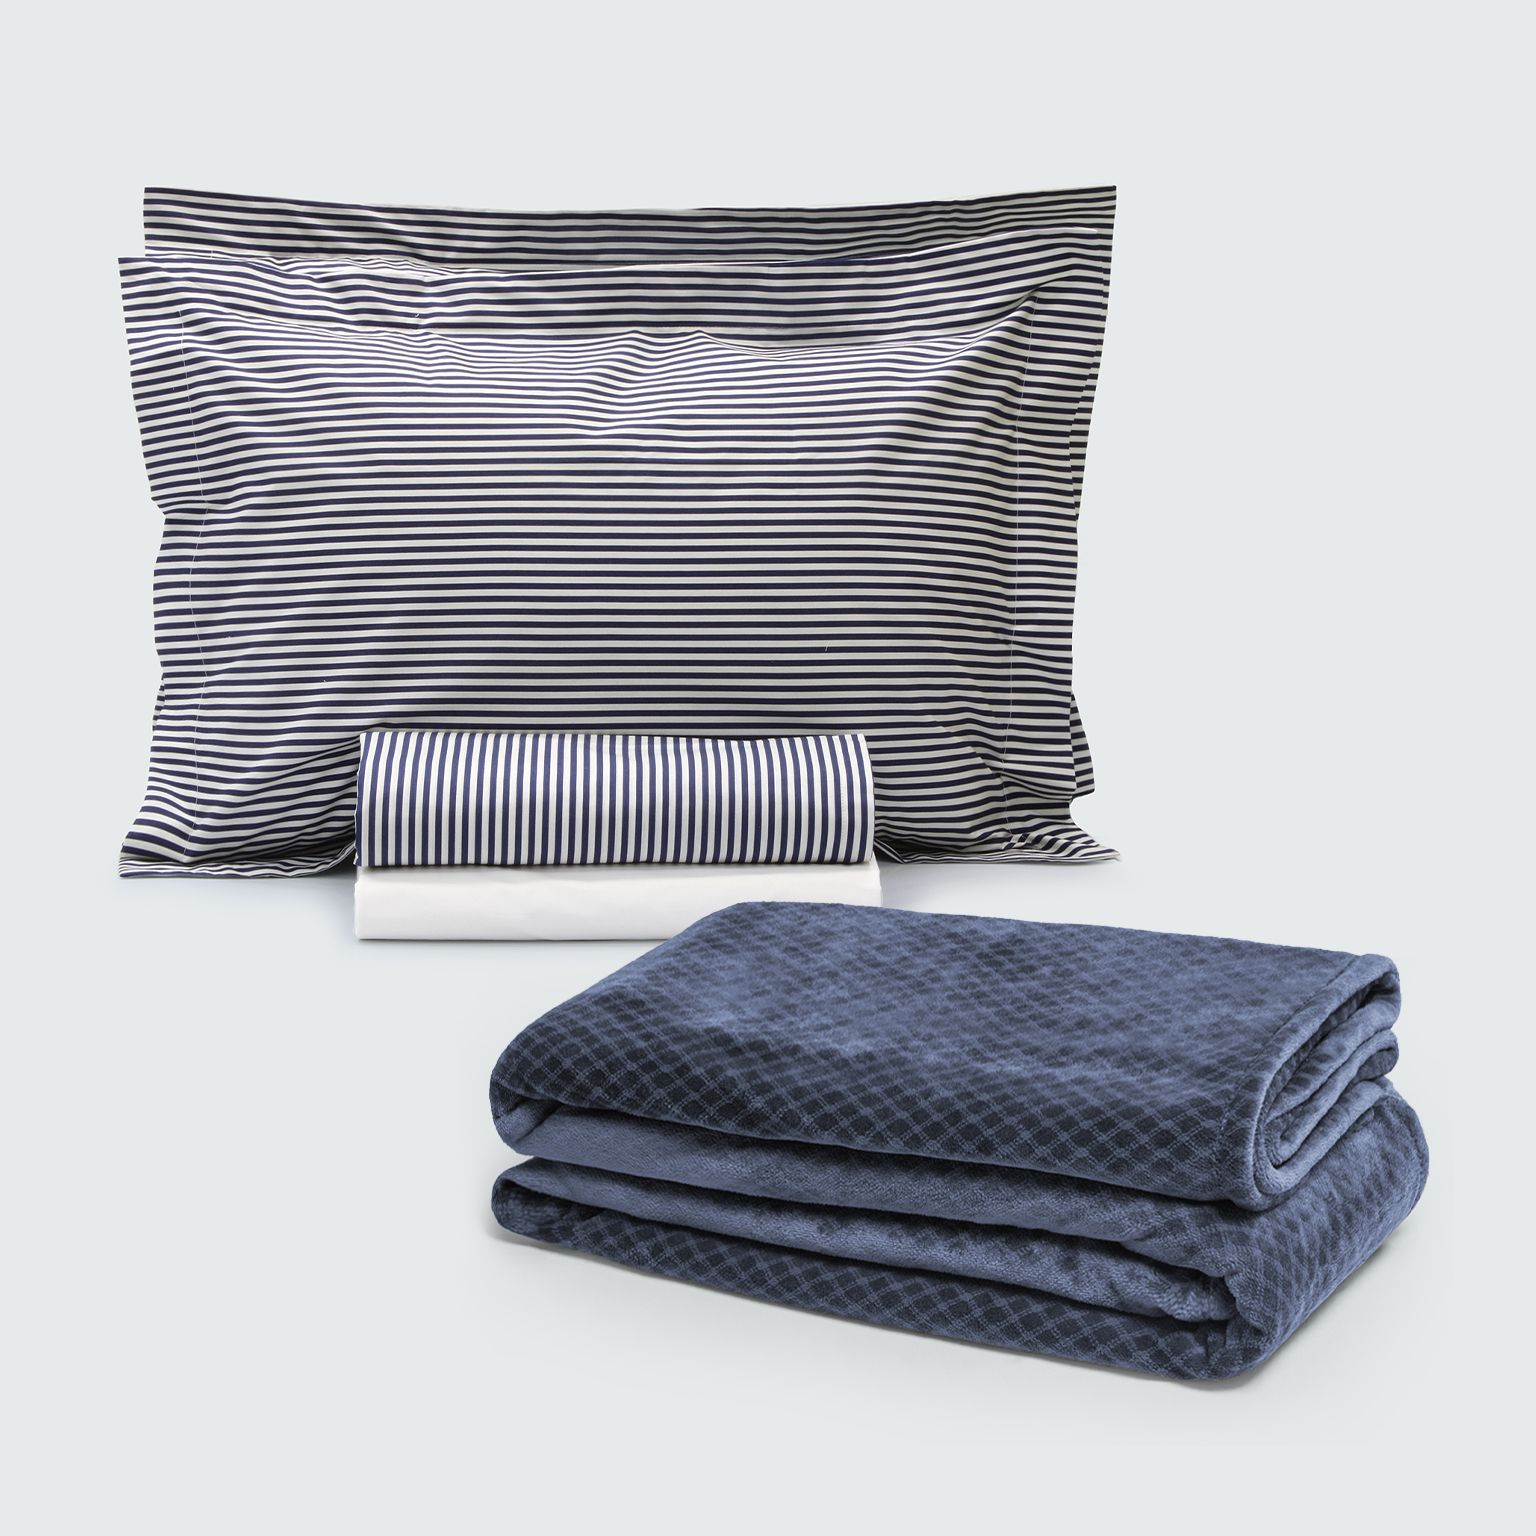 Kit Cama One for All + Noronha